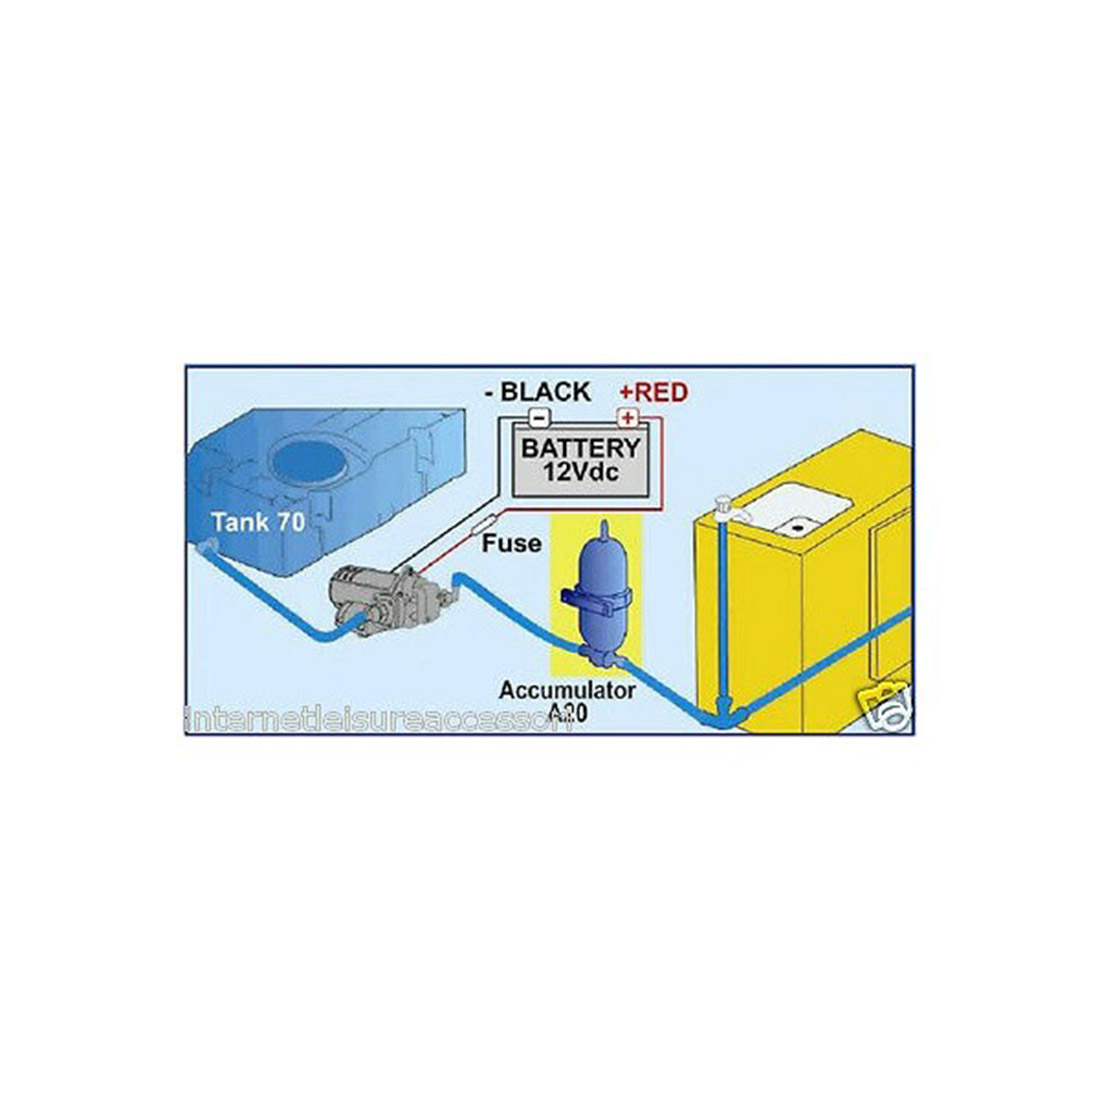 Water expansion tank installation diagram for camper conversion.